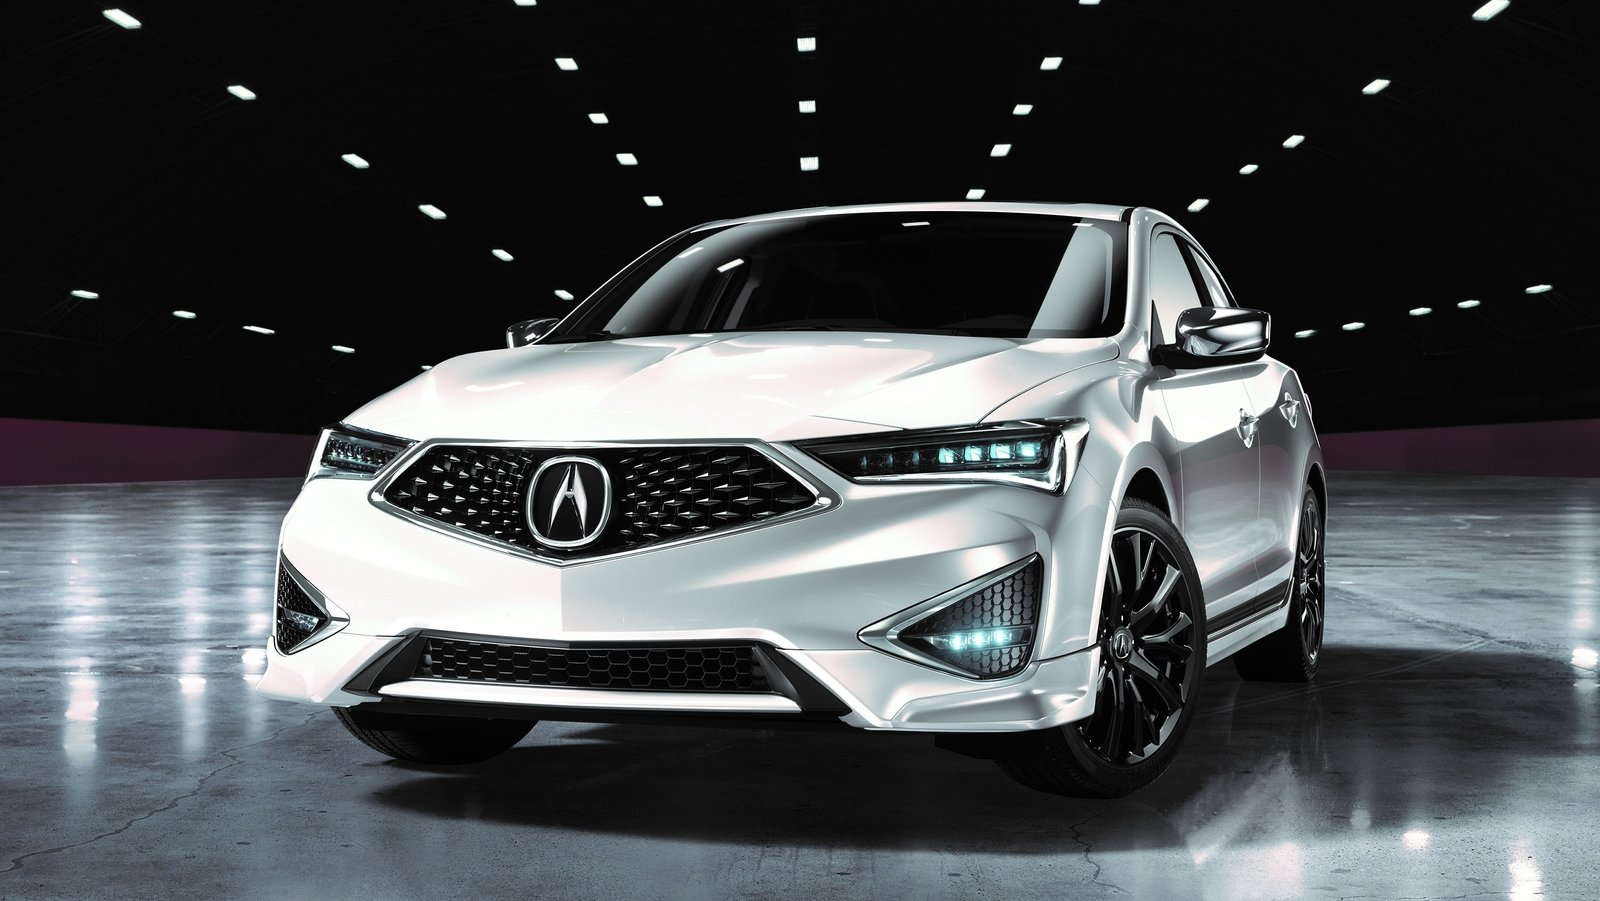 The 2019 Acura ILX Was Showcased At SEMA With Some Awesome ...